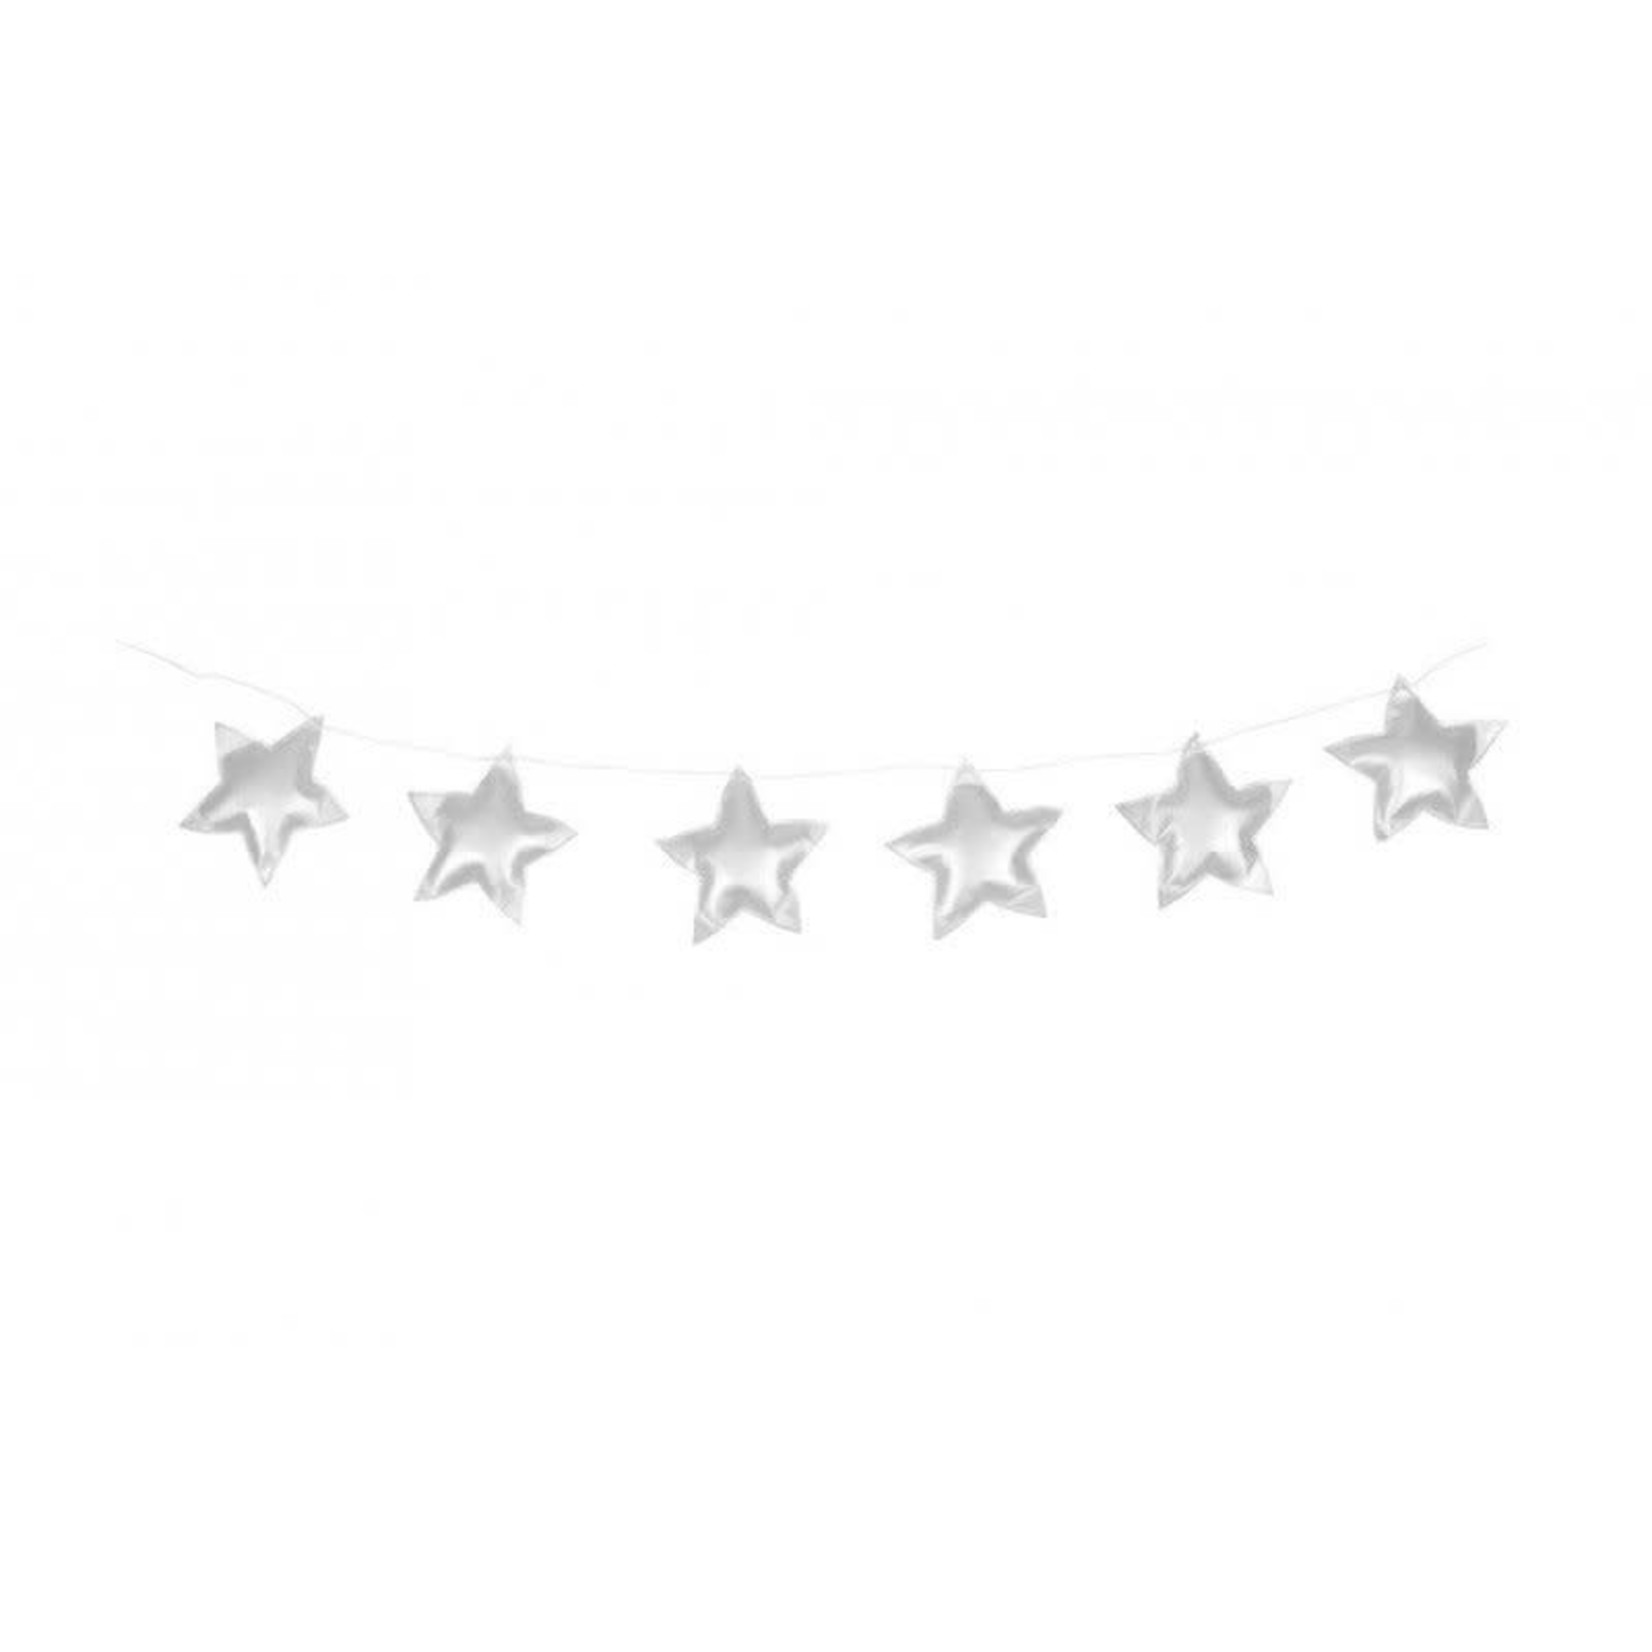 Cotton & Sweets Star Garland - Silver